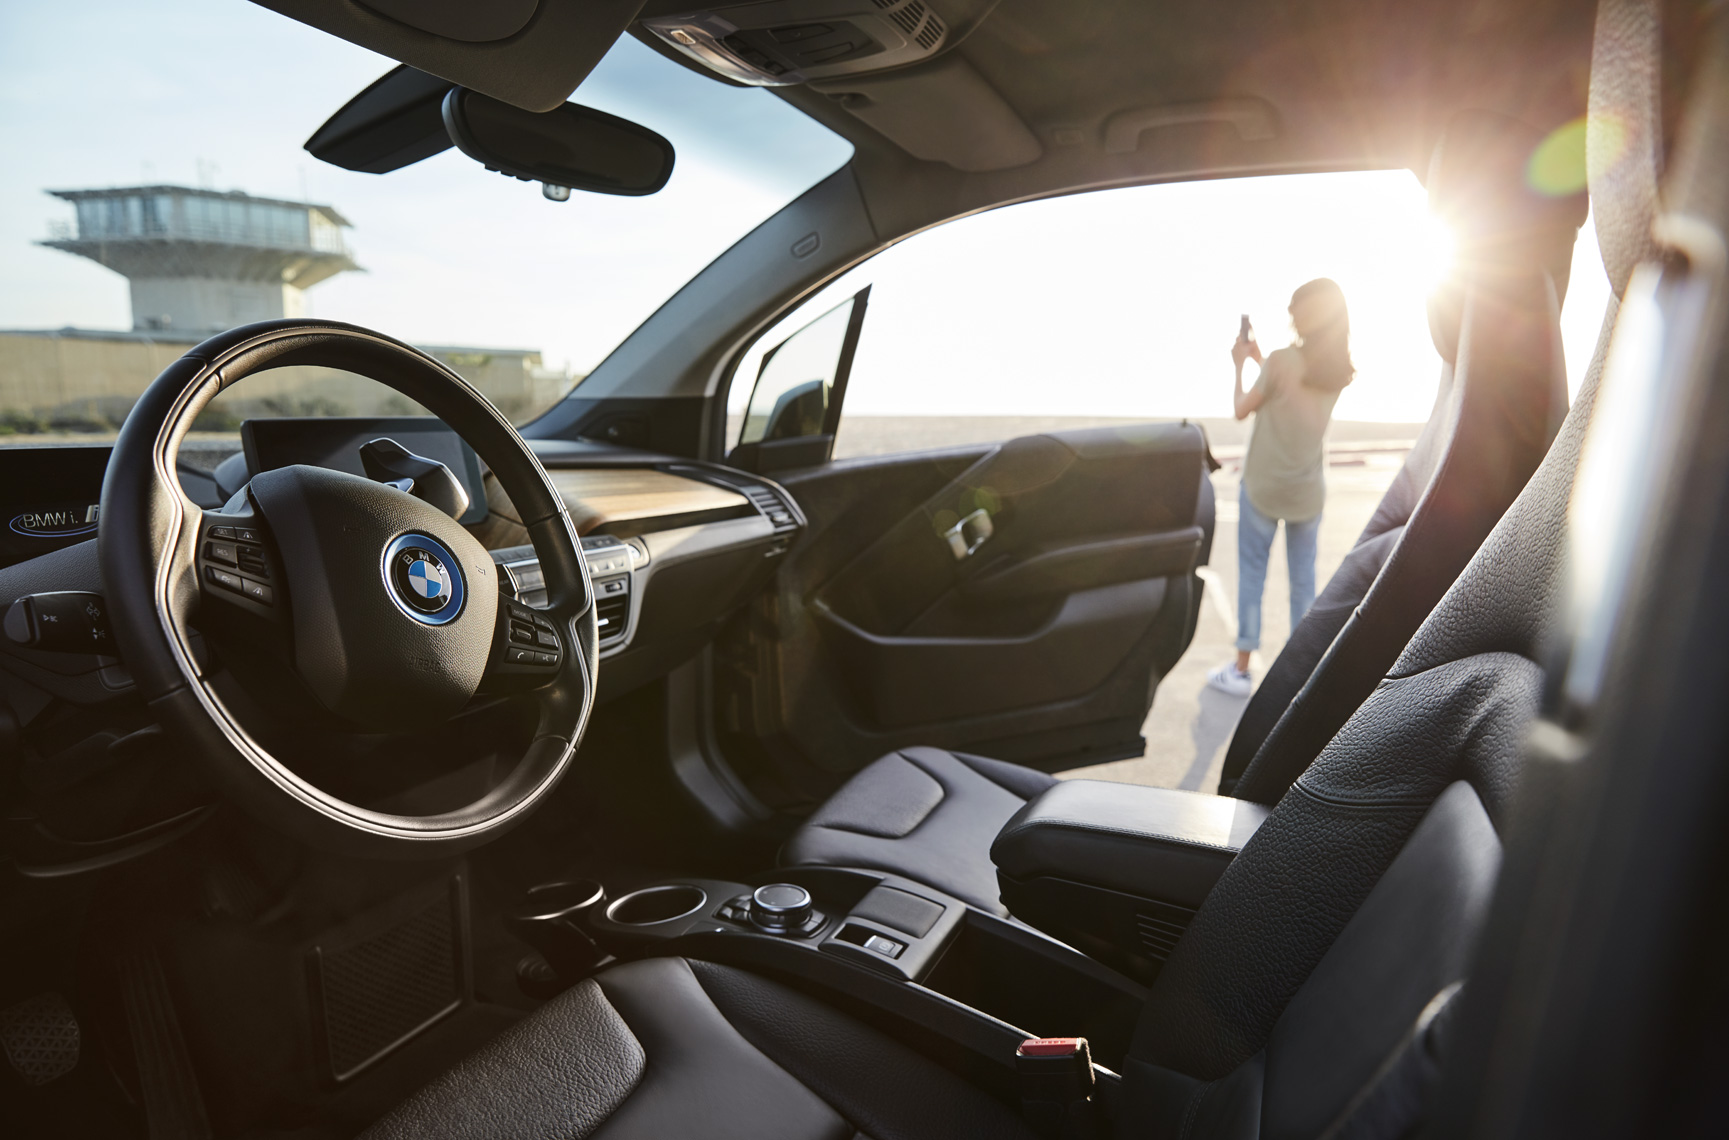 Christopher Nelson Photography|BMWi3|Lifestyle|Venice Beach